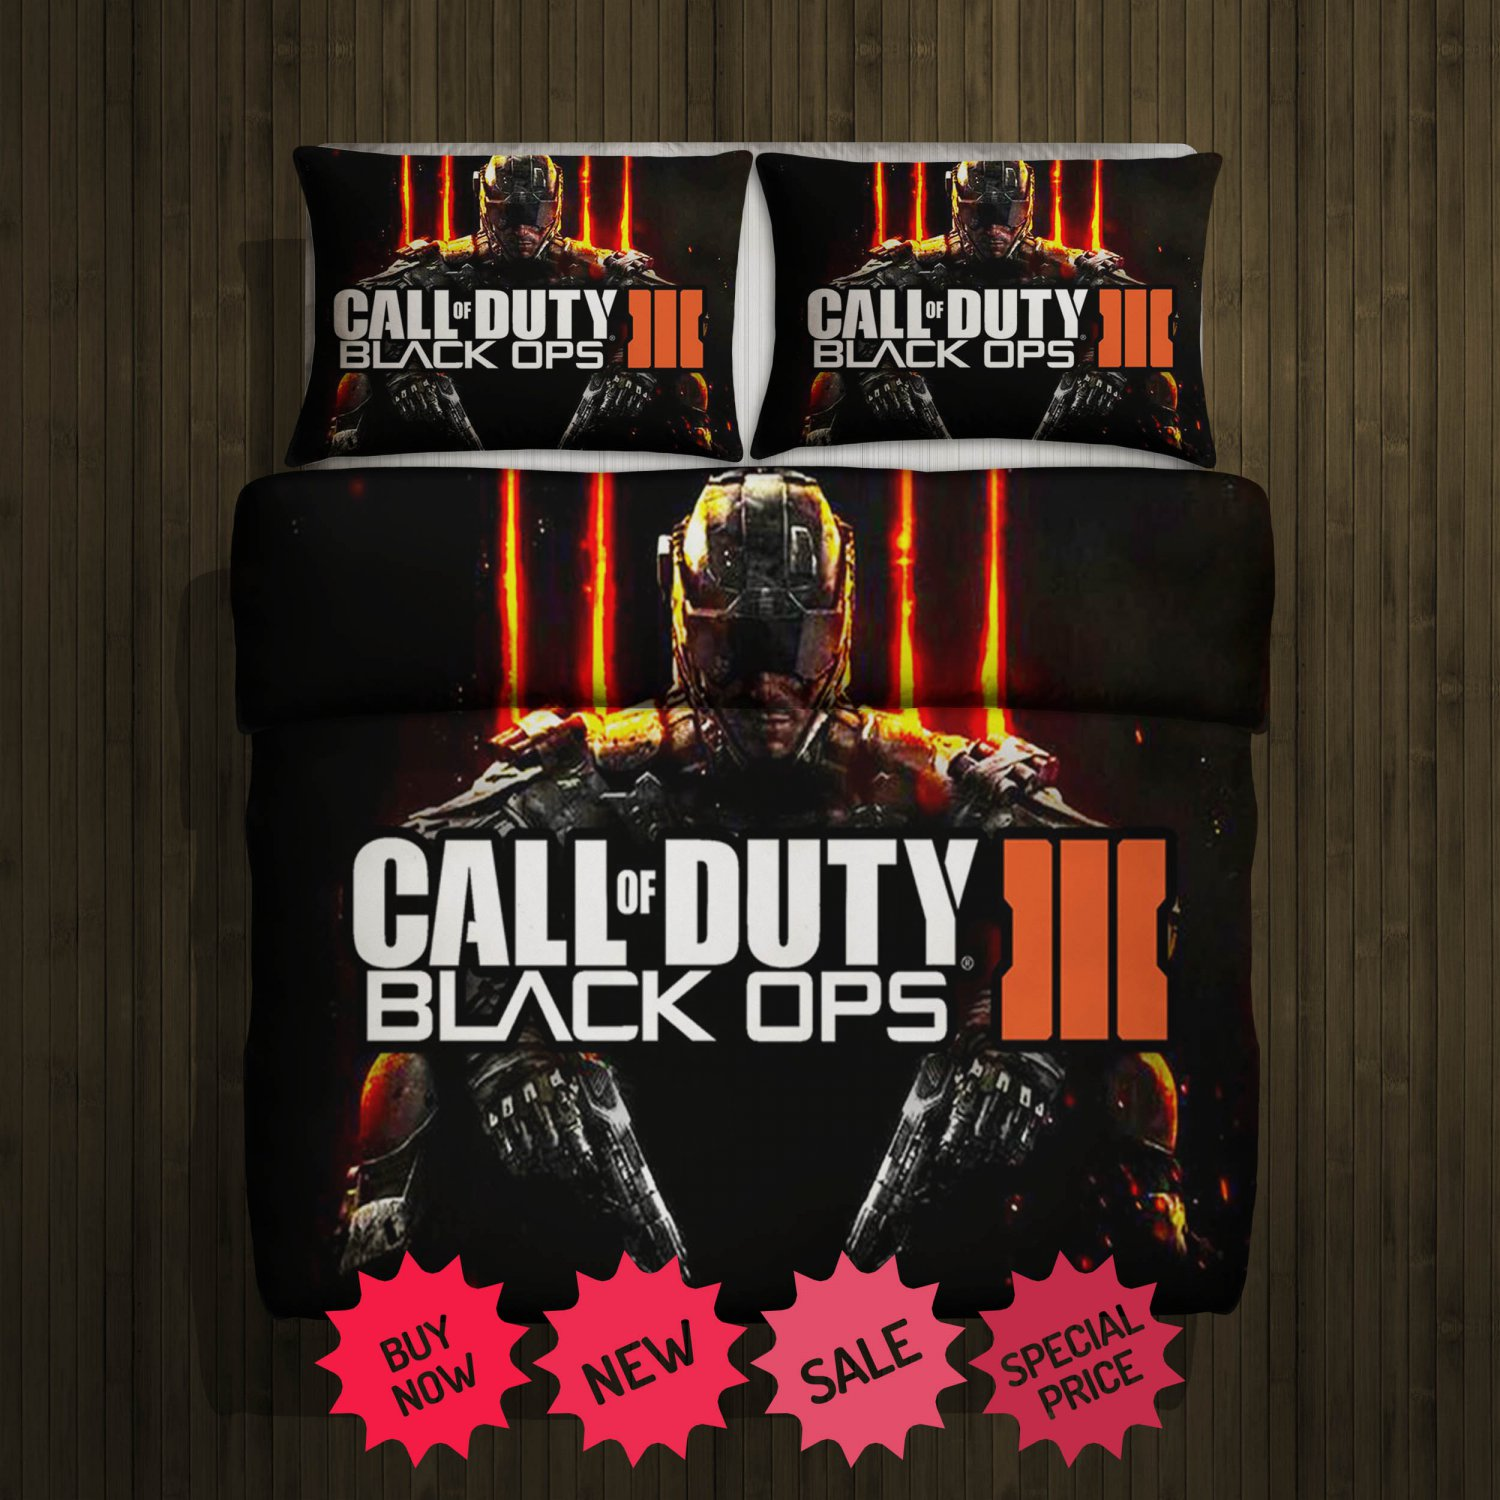 Call Of Duty Black Ops Blanket Large & 2 Pillow Cases